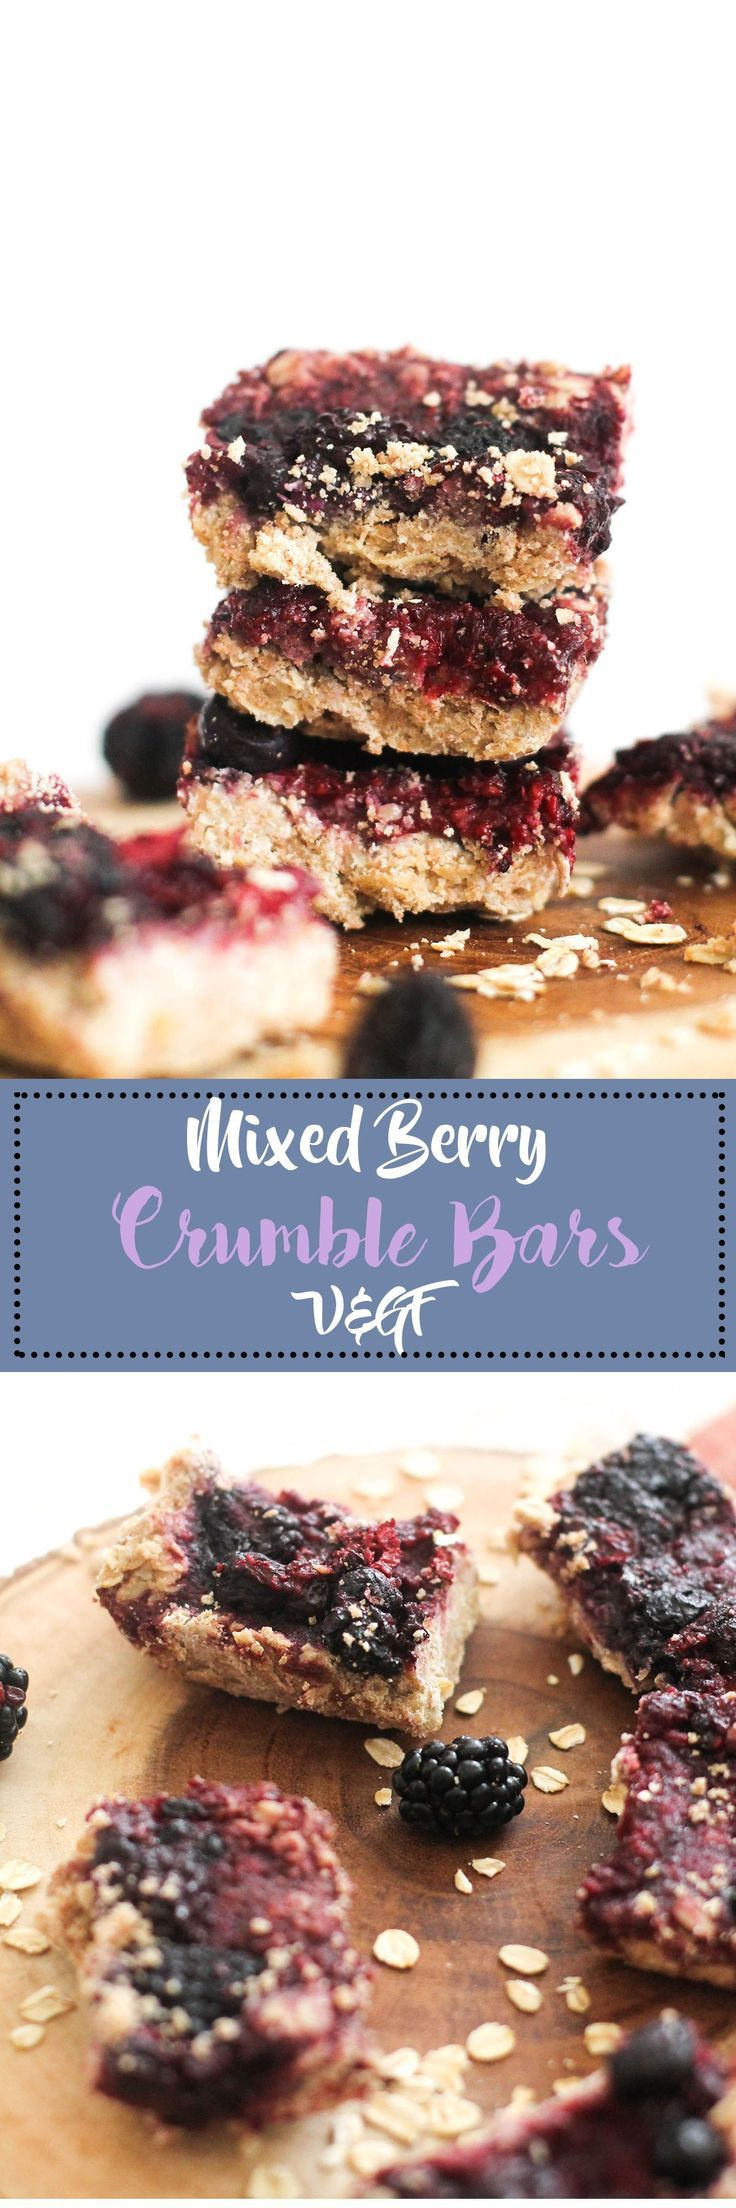 These mixed berry crumble bars are vegan, gluten free, and the perfect dessert! They're made with real ingredients, require minimal ingredients, and are incredibly delicious.